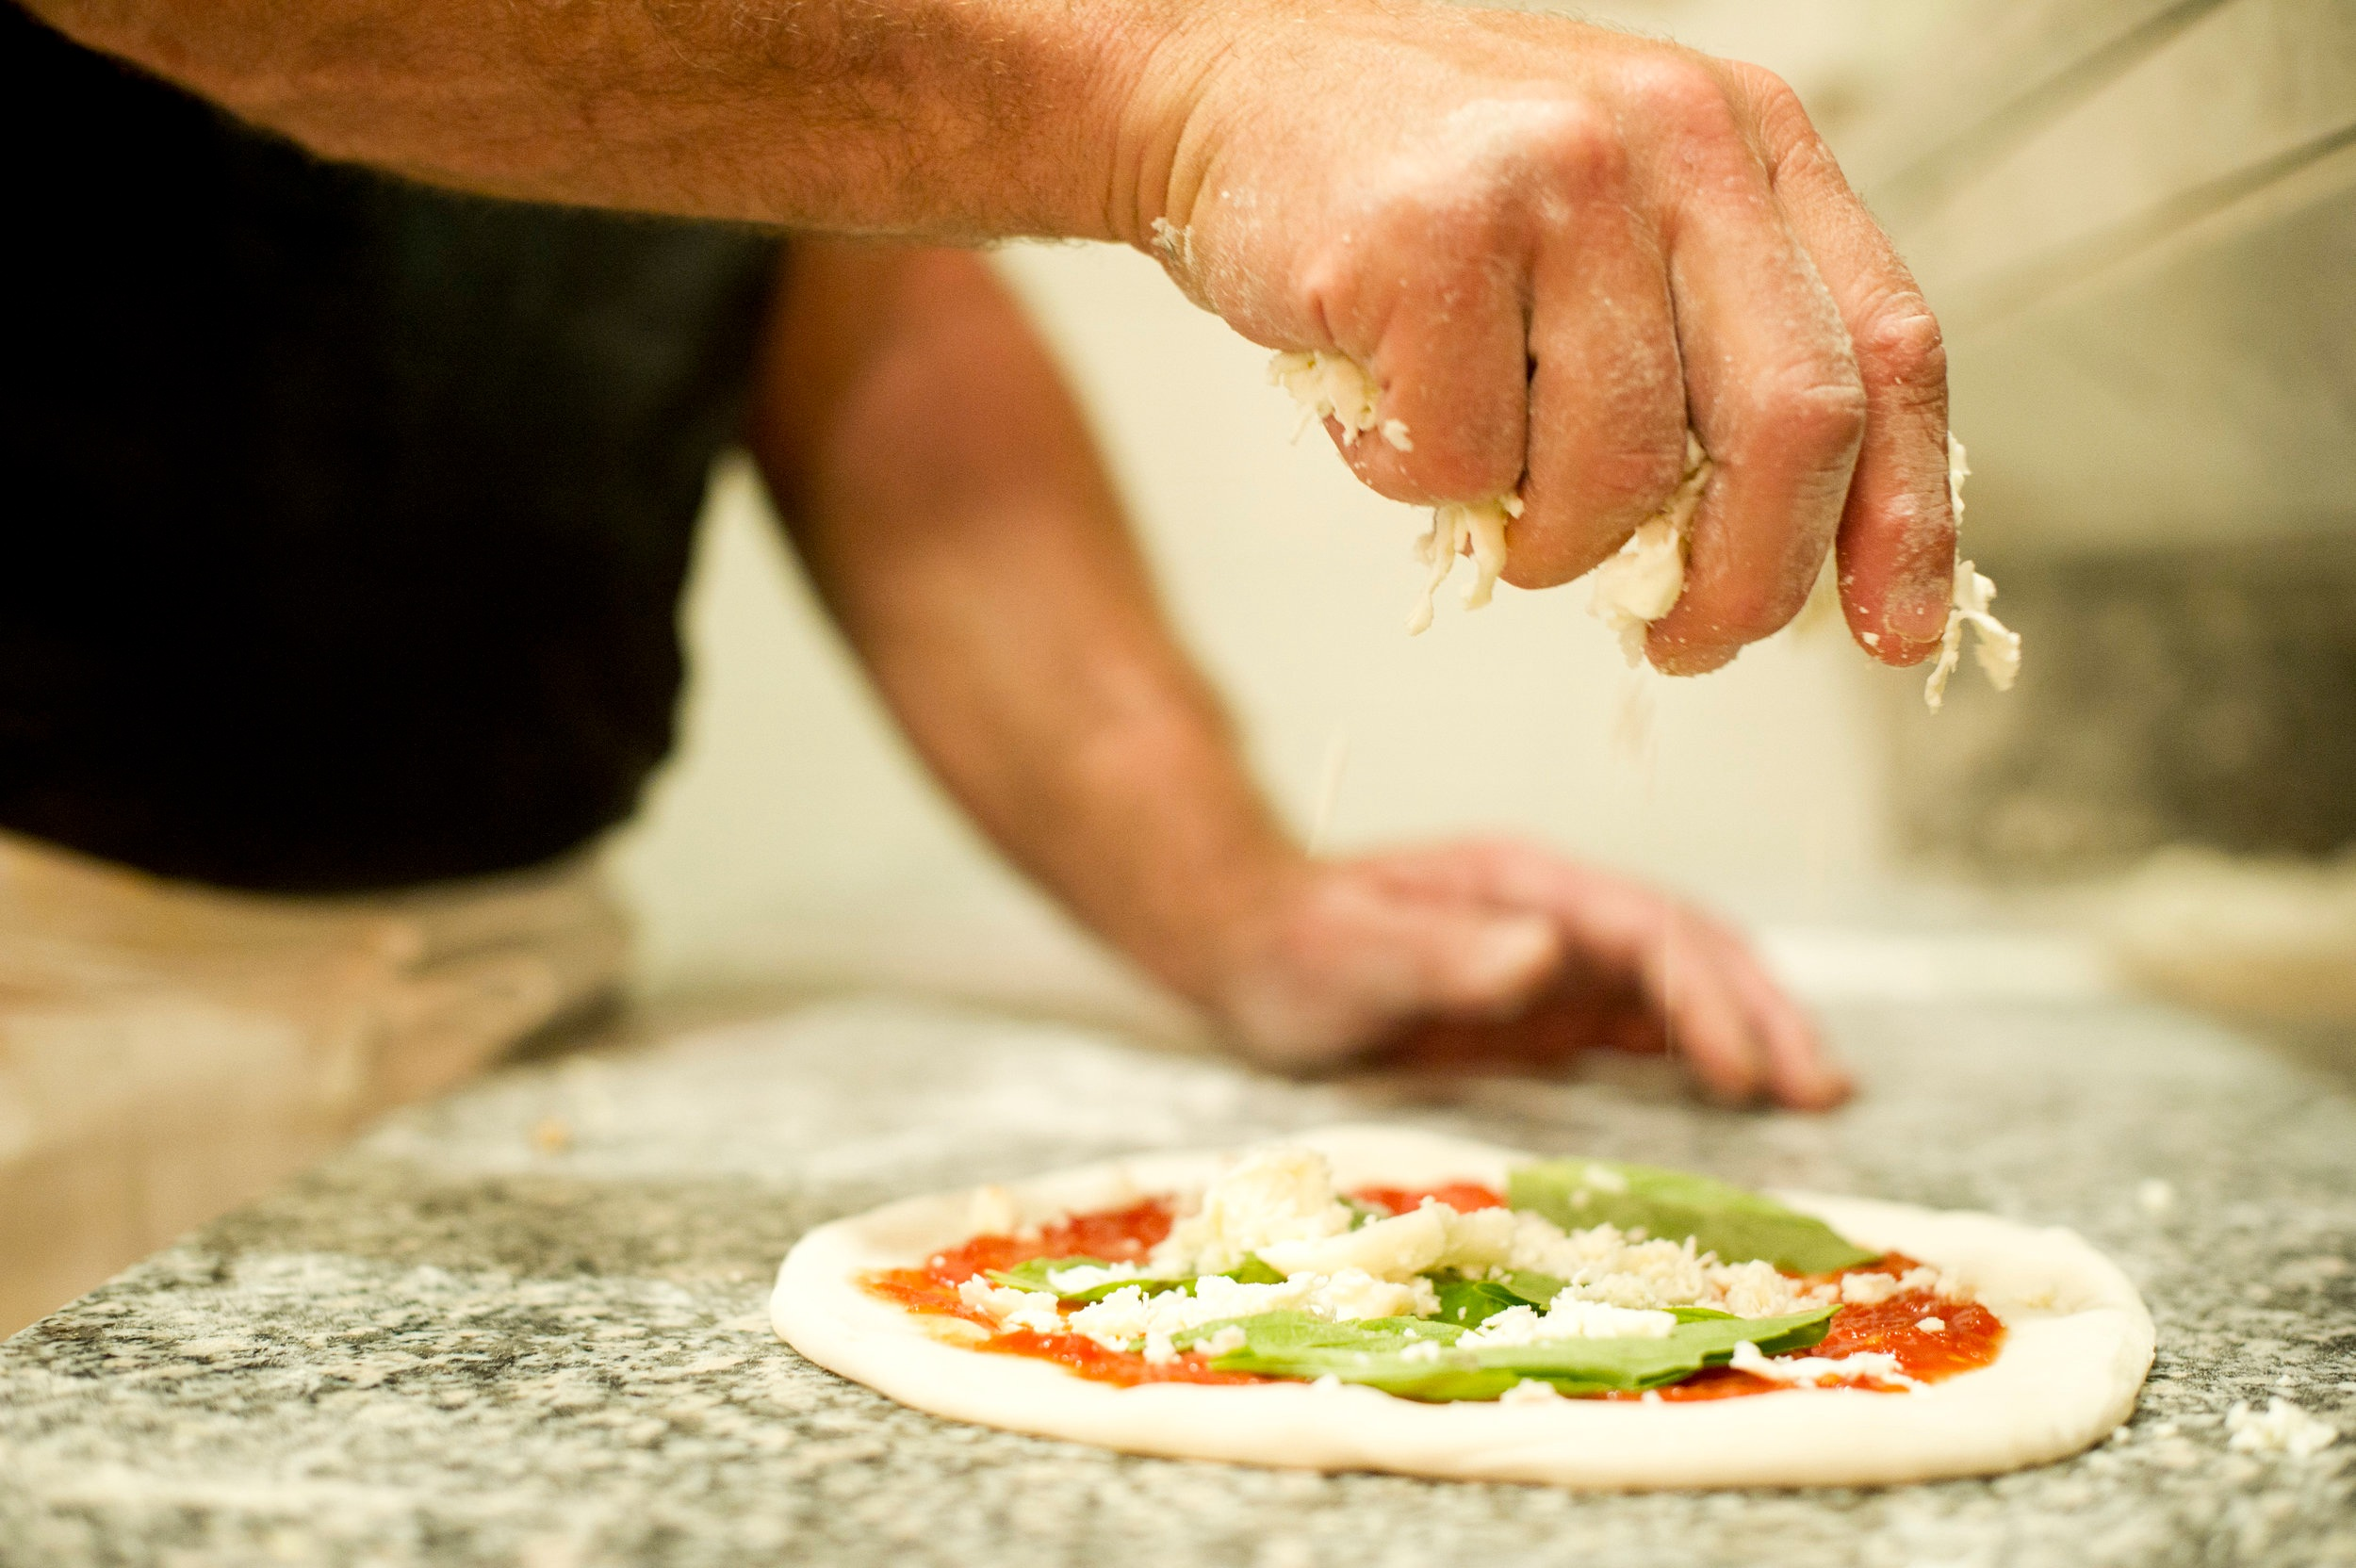 Our Pizzas are hand-stretched, we never use a rolling pin!